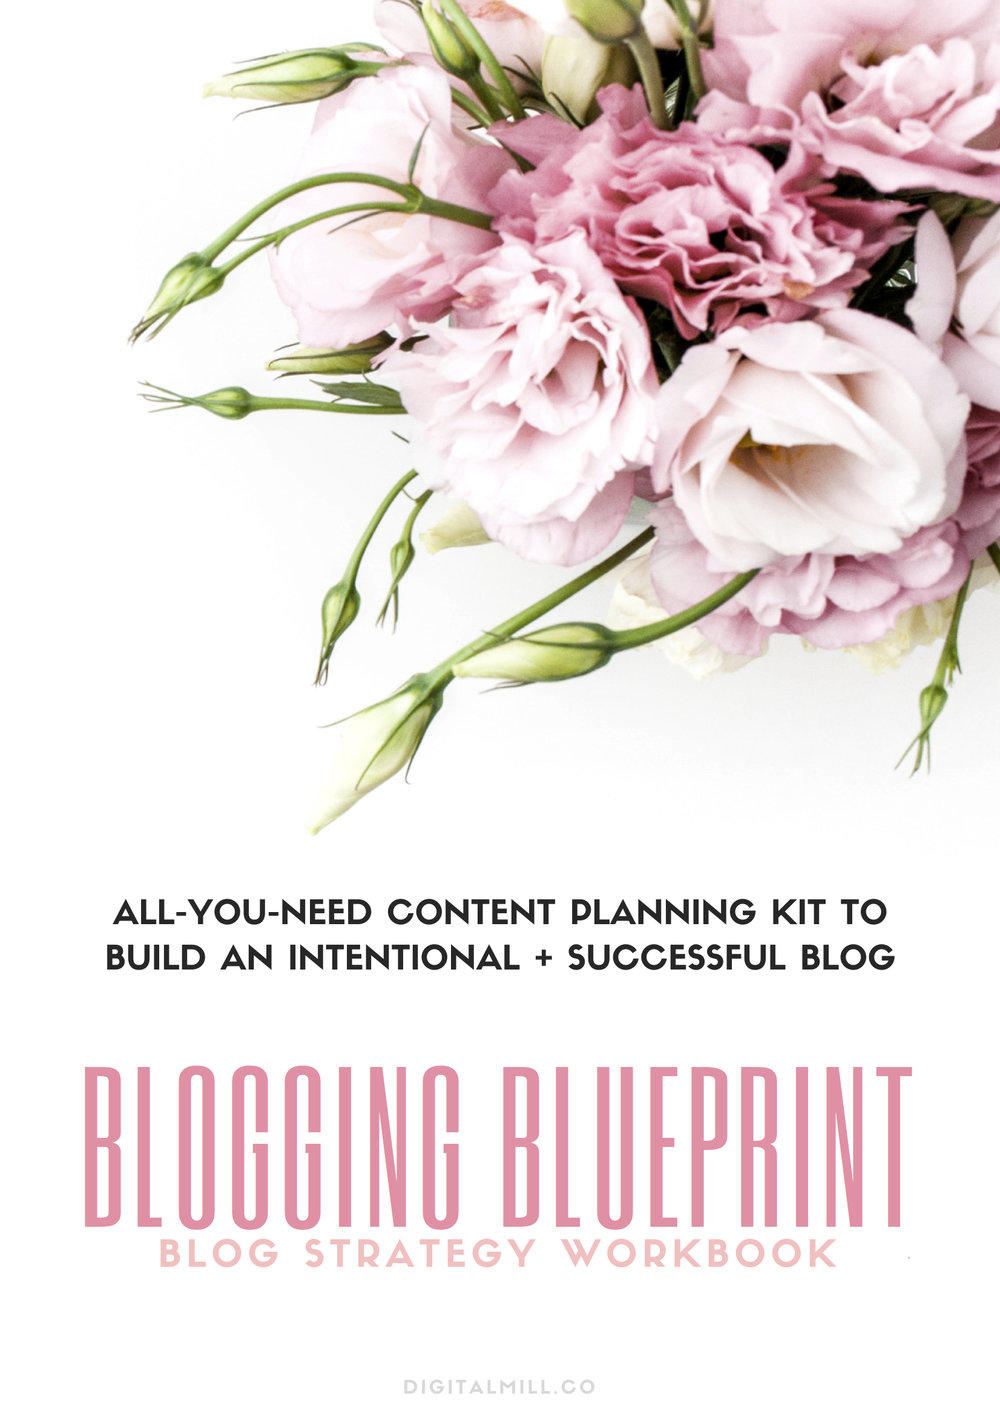 blog content planning workbook